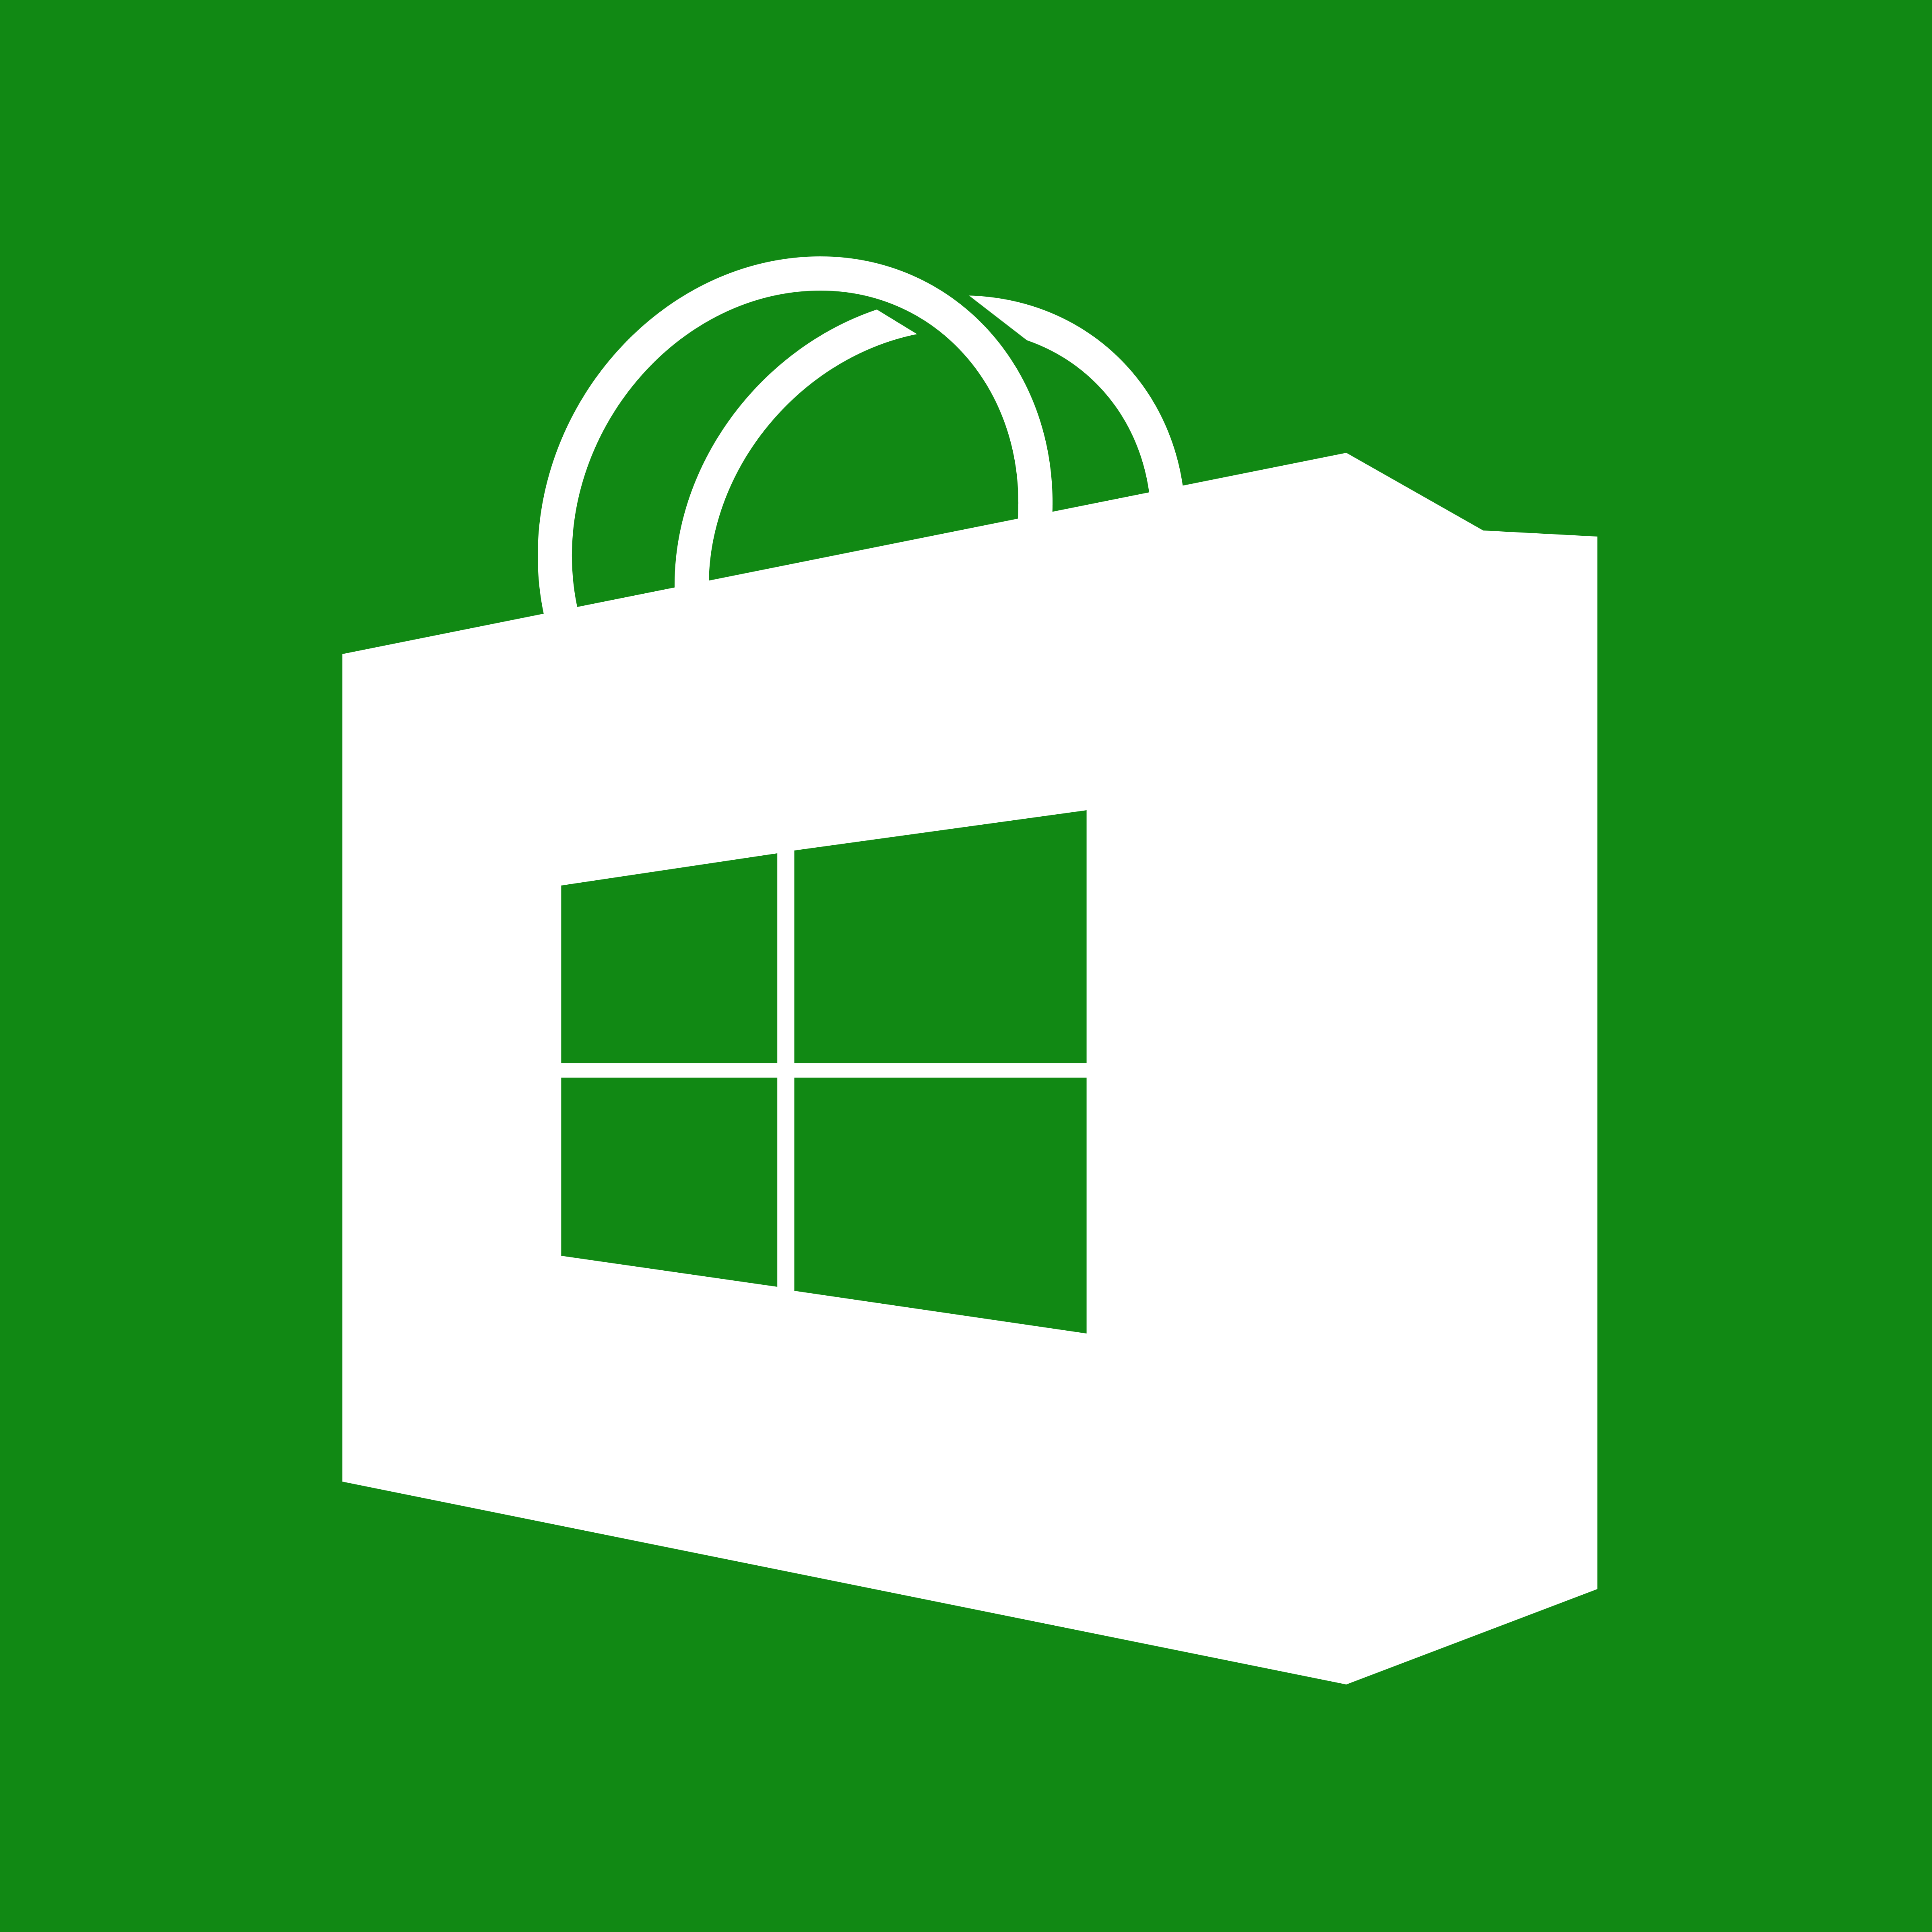 Windows Store Icon Homemade By Bannax1994 On Deviantart